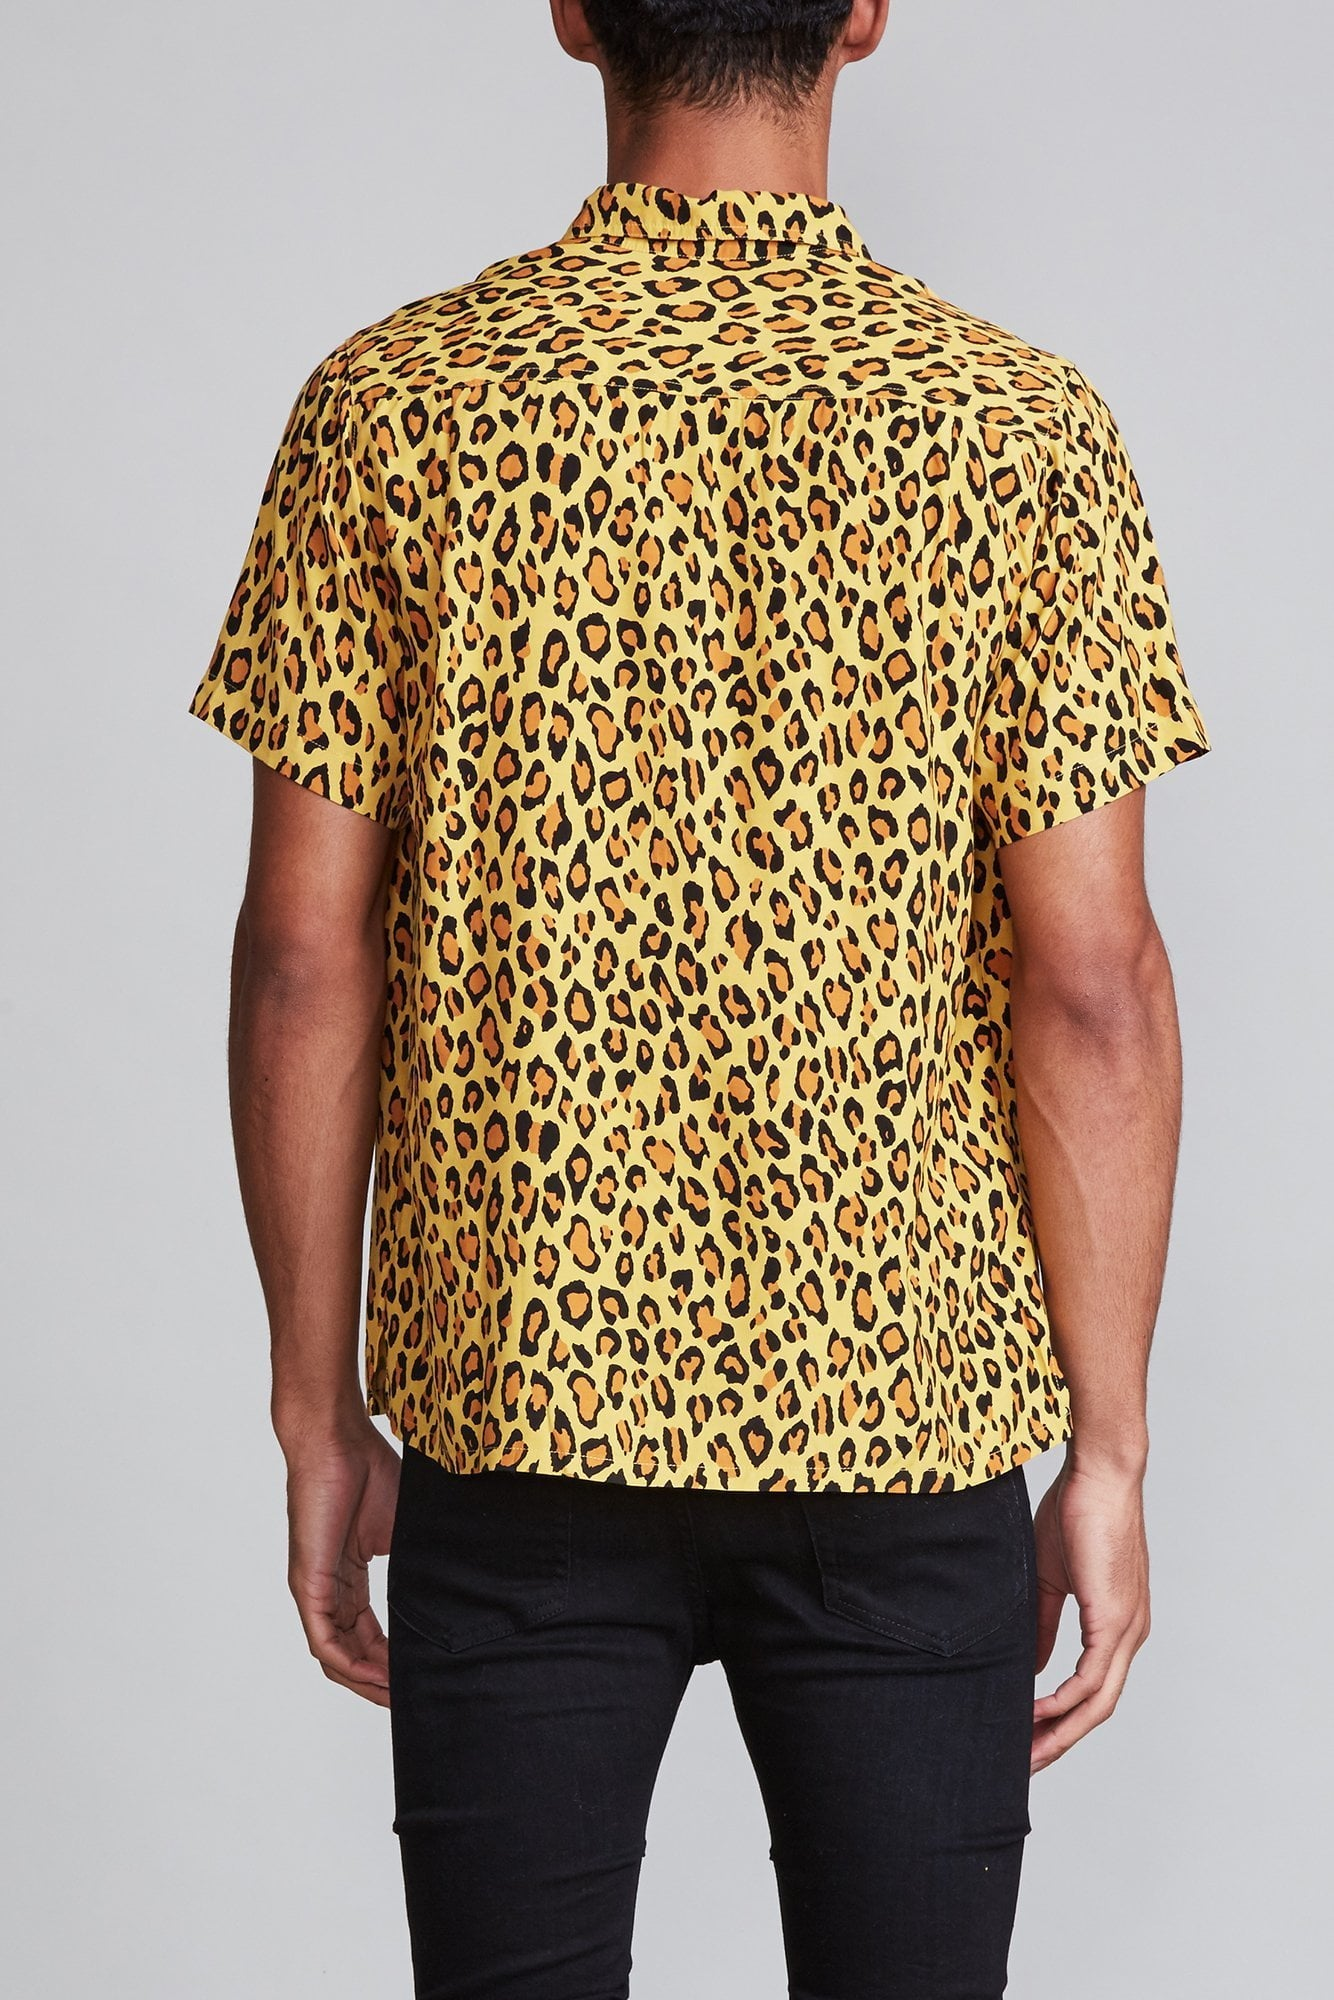 Tony Shirt - Yellow Leopard